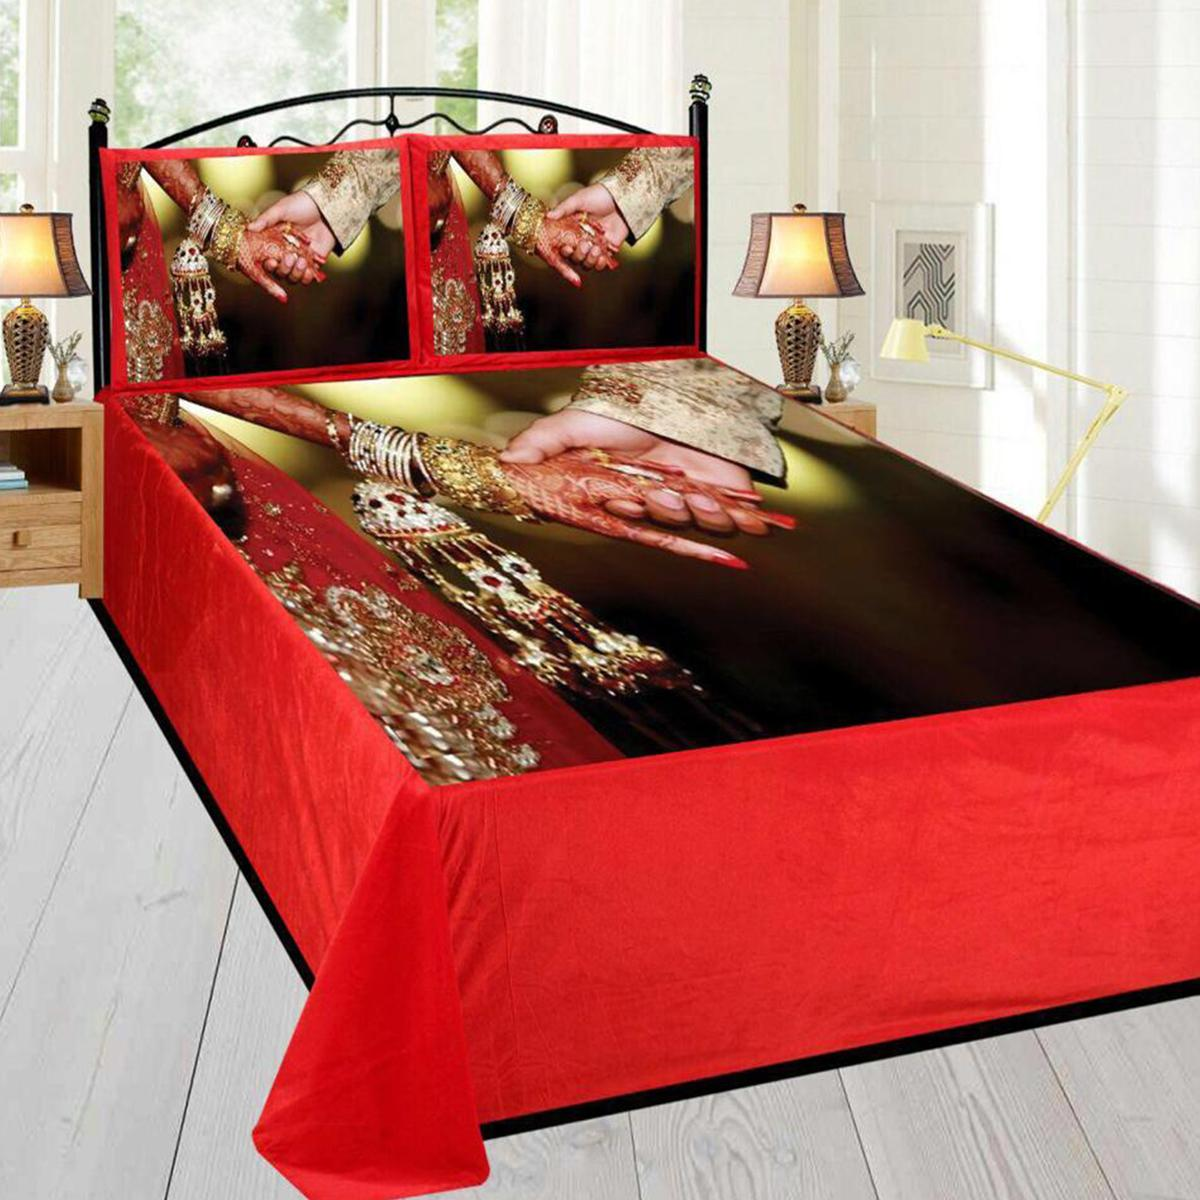 Adirav - Red Colored Printed Double Velvet Bedsheet With 2 Pillow Cover